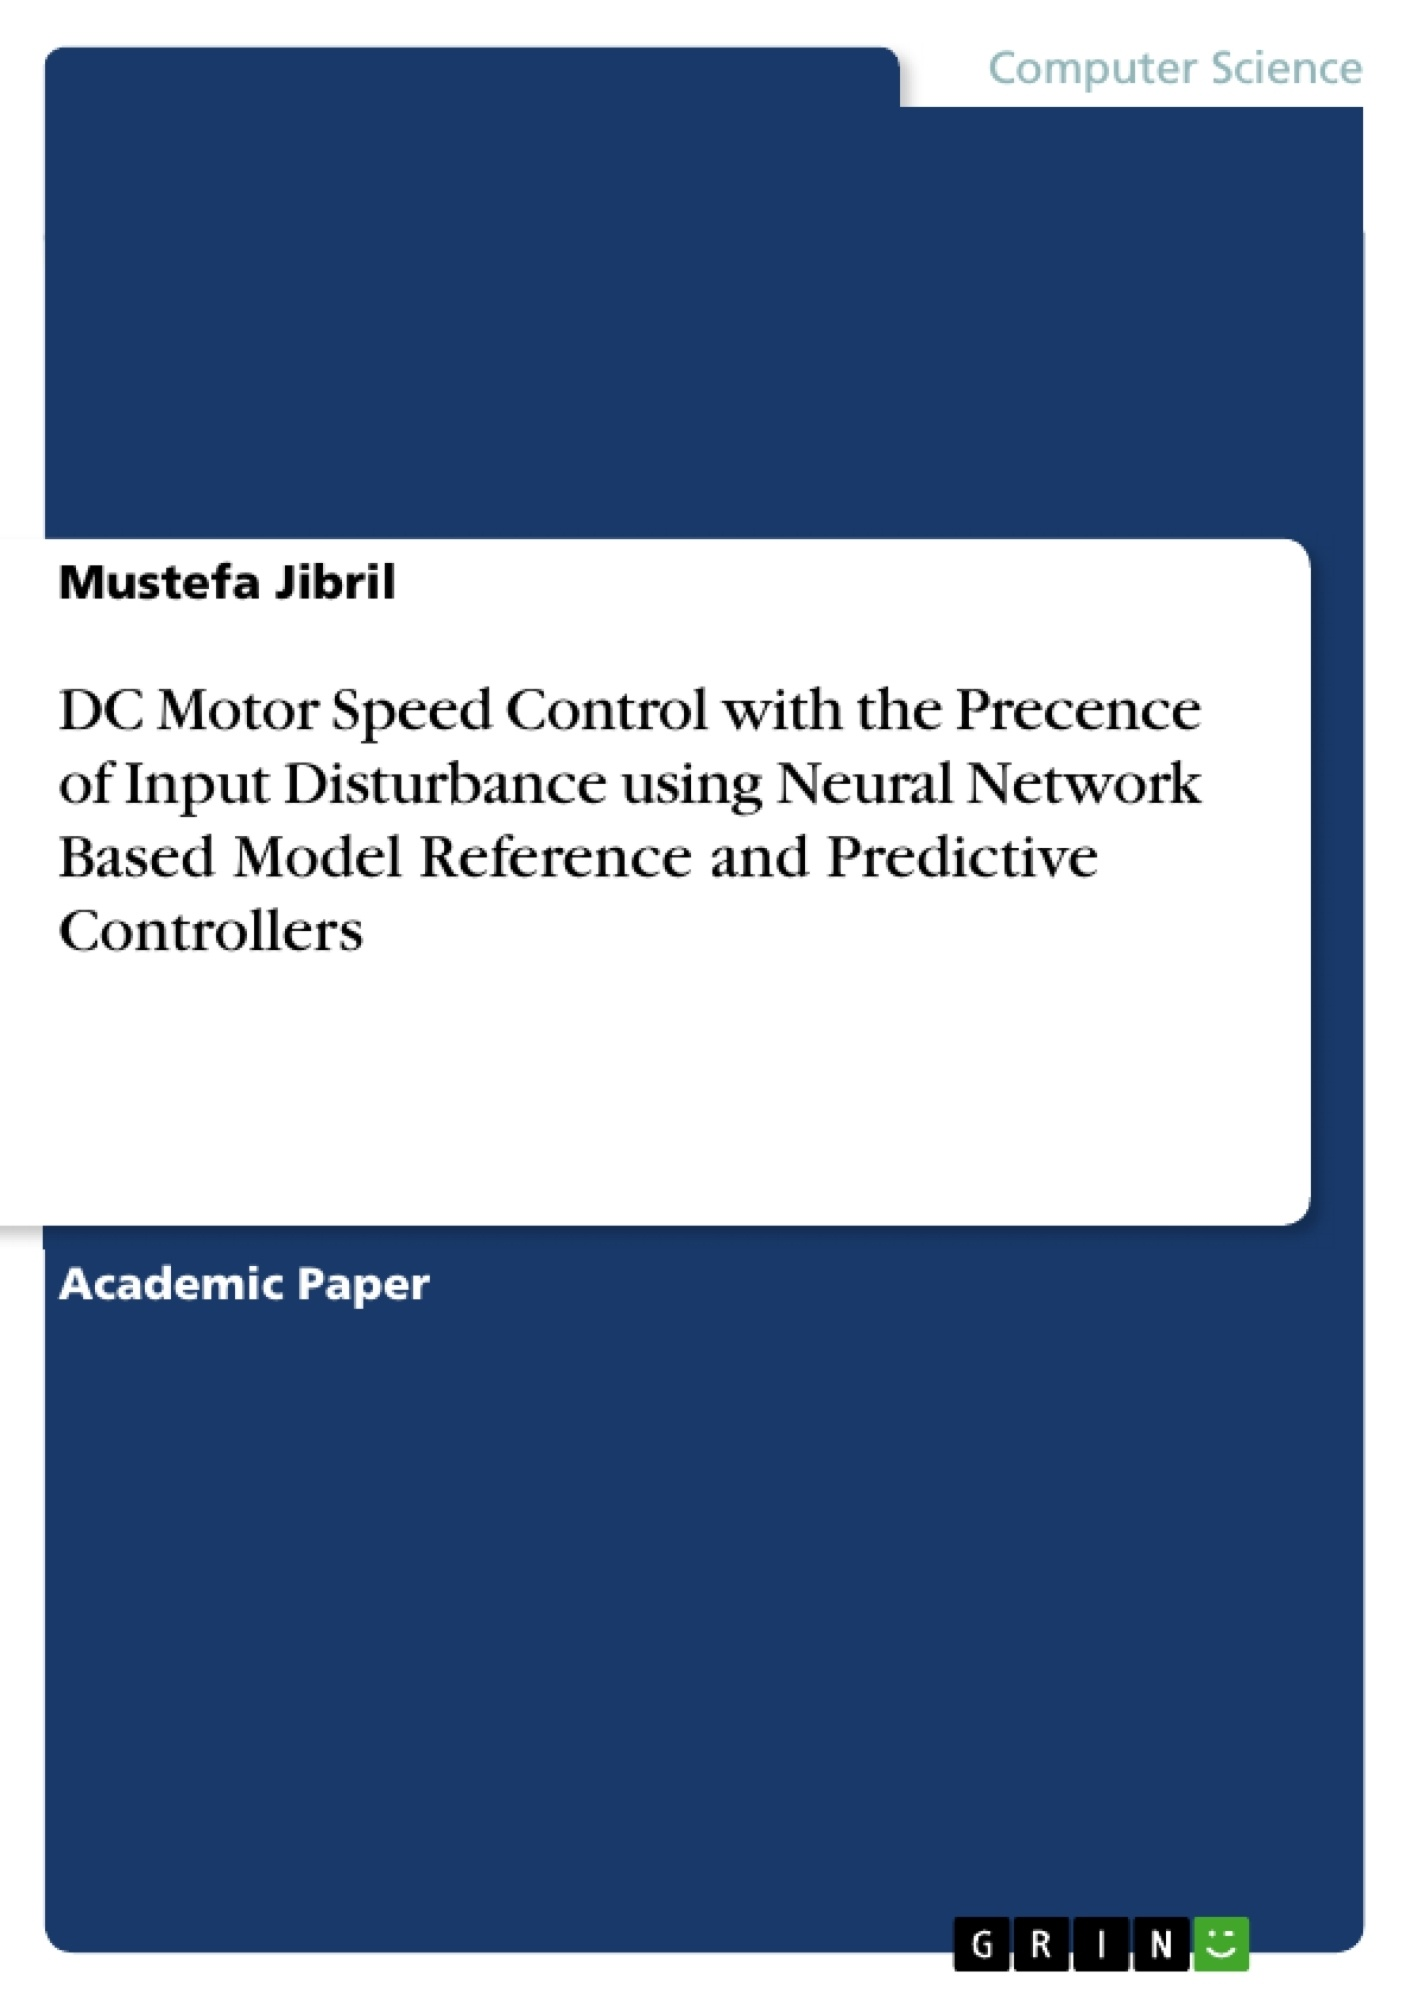 Title: DC Motor Speed Control with the Precence of Input Disturbance using Neural Network Based Model Reference and Predictive Controllers